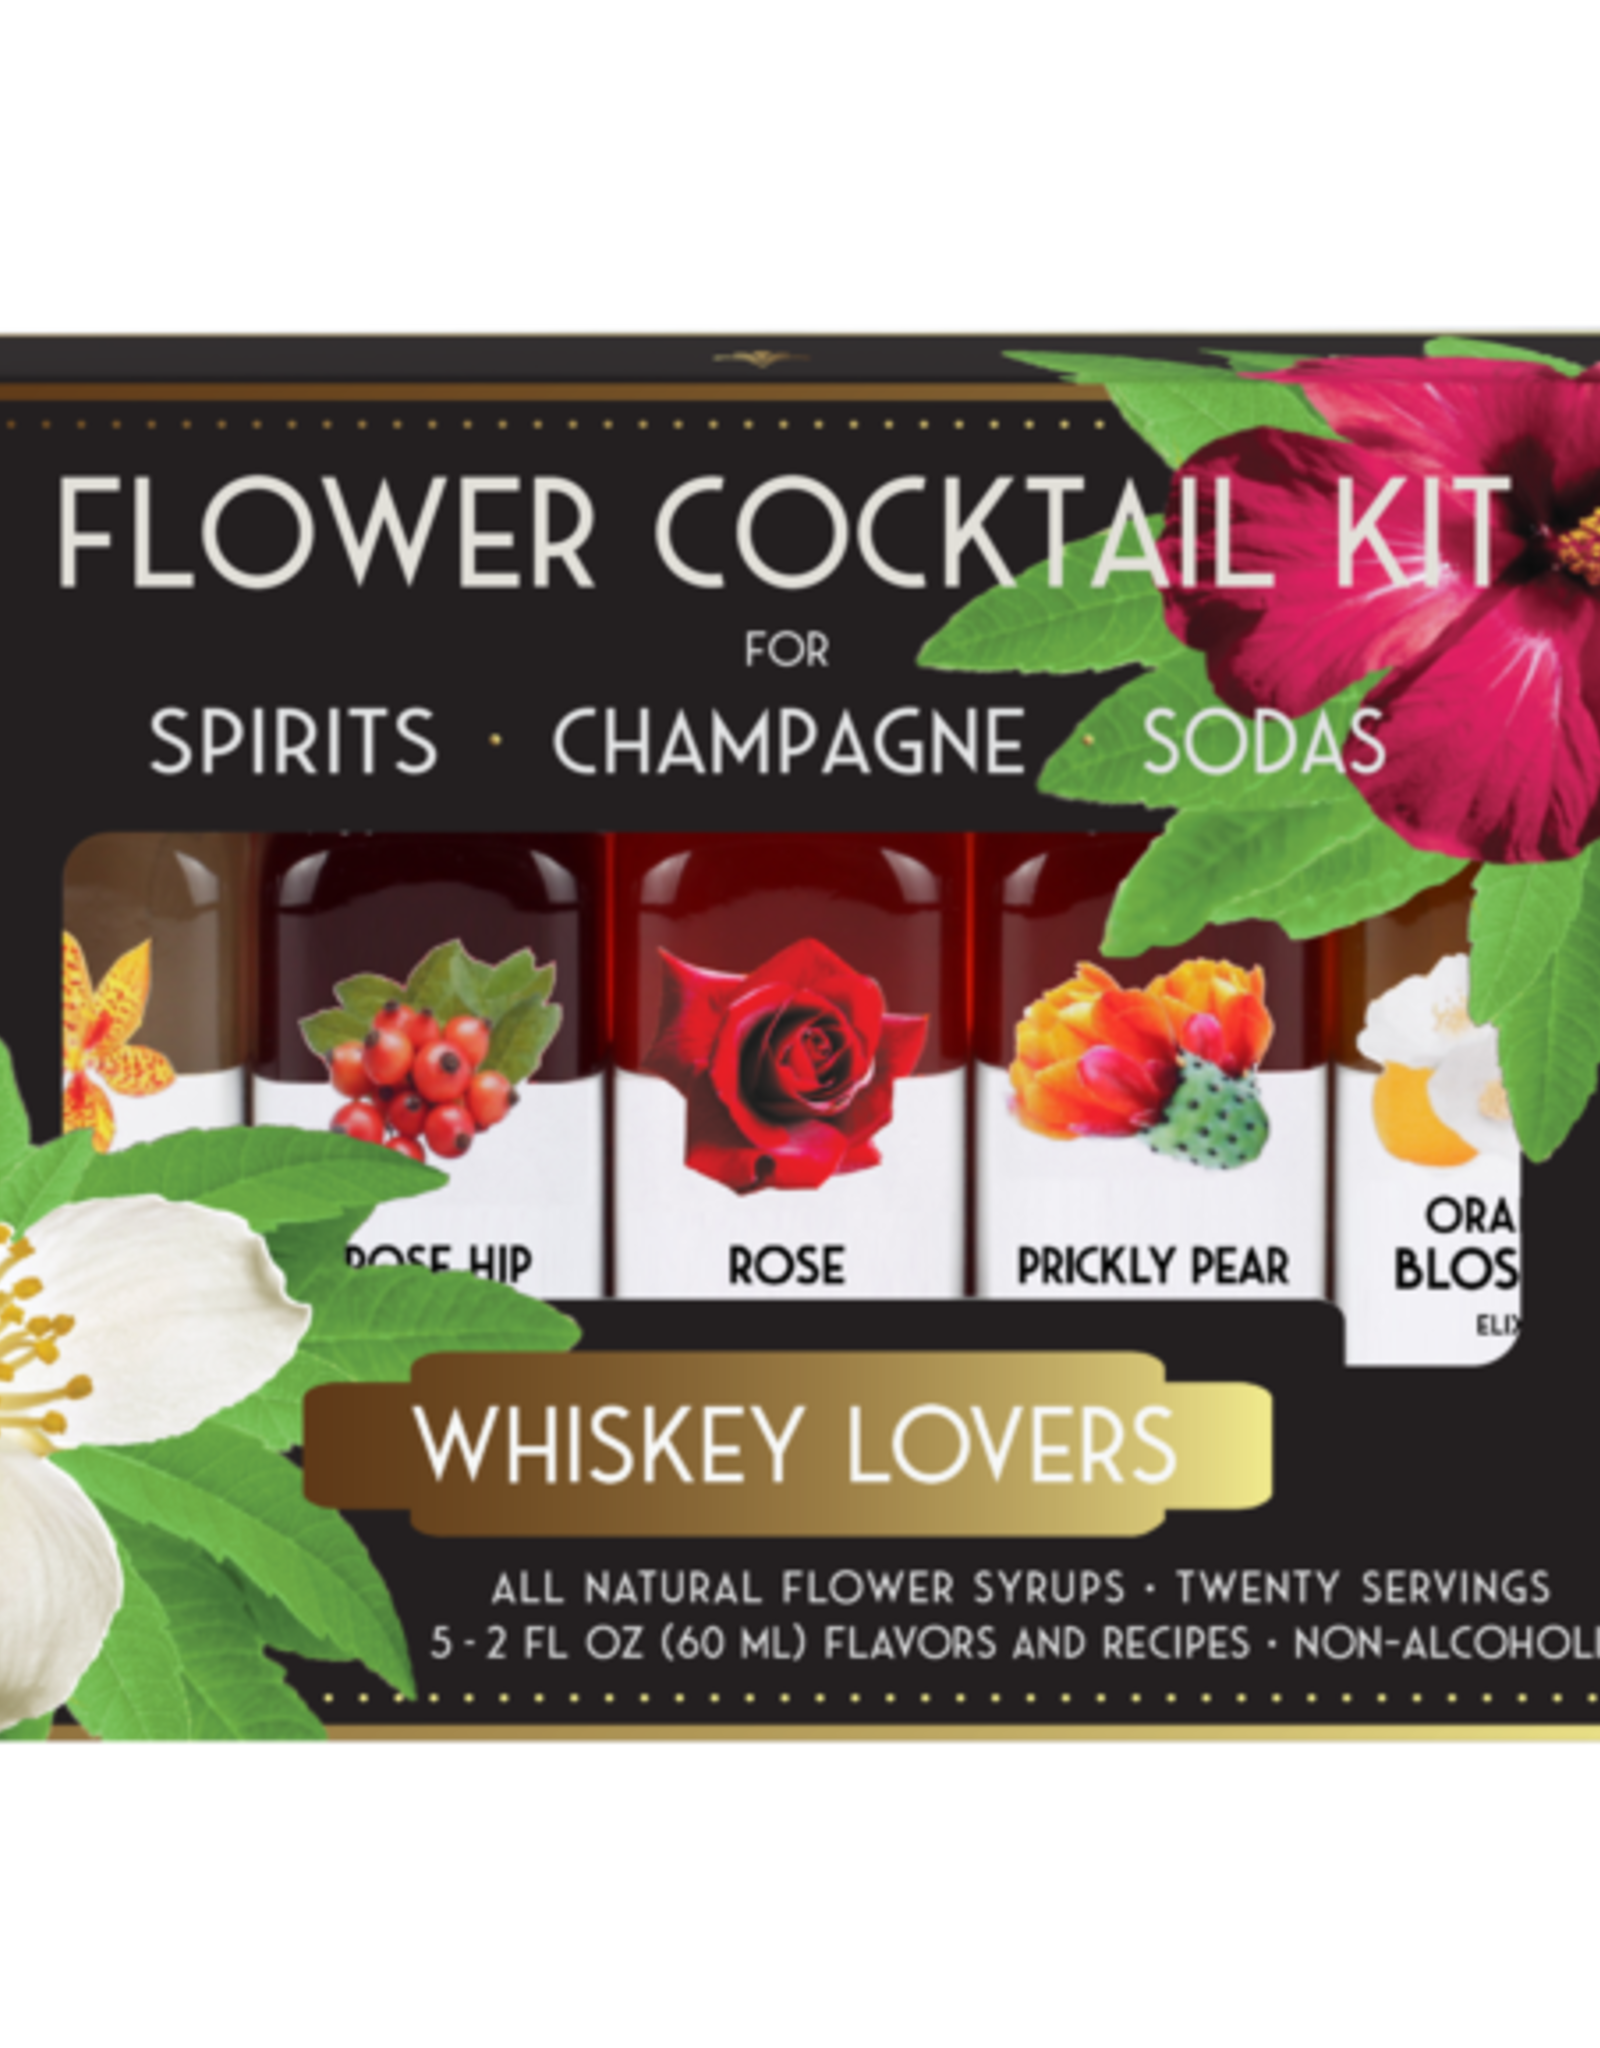 Floral Elixir Company Whiskey Lovers Cocktail Kit